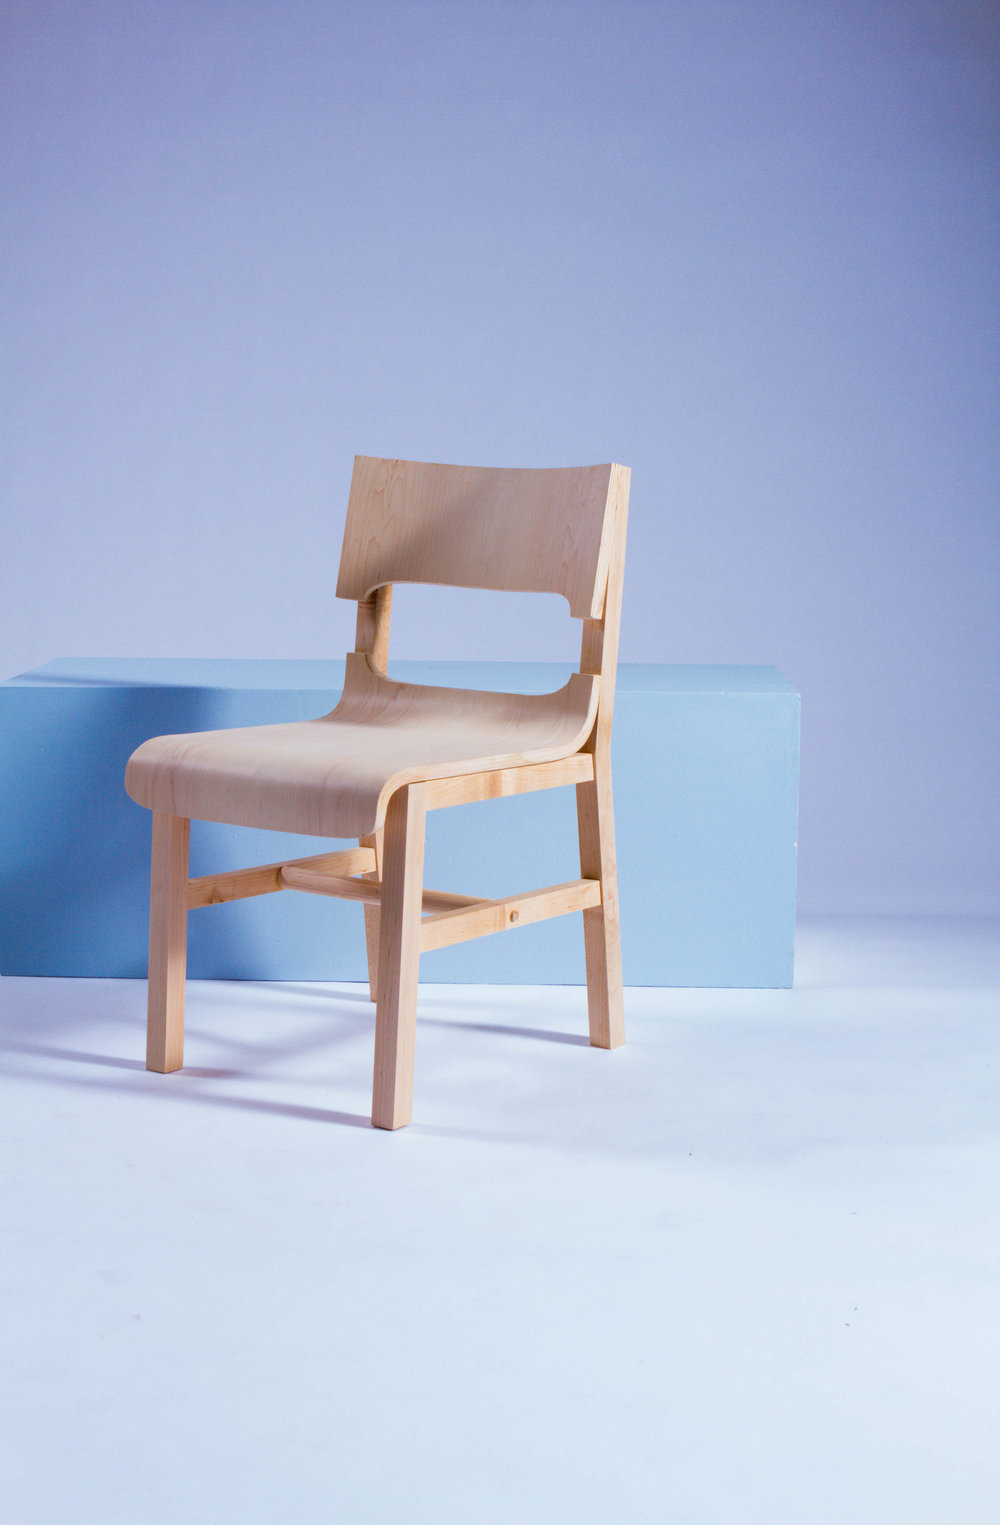 FINAL SHOT SLIDE CHAIR.jpg